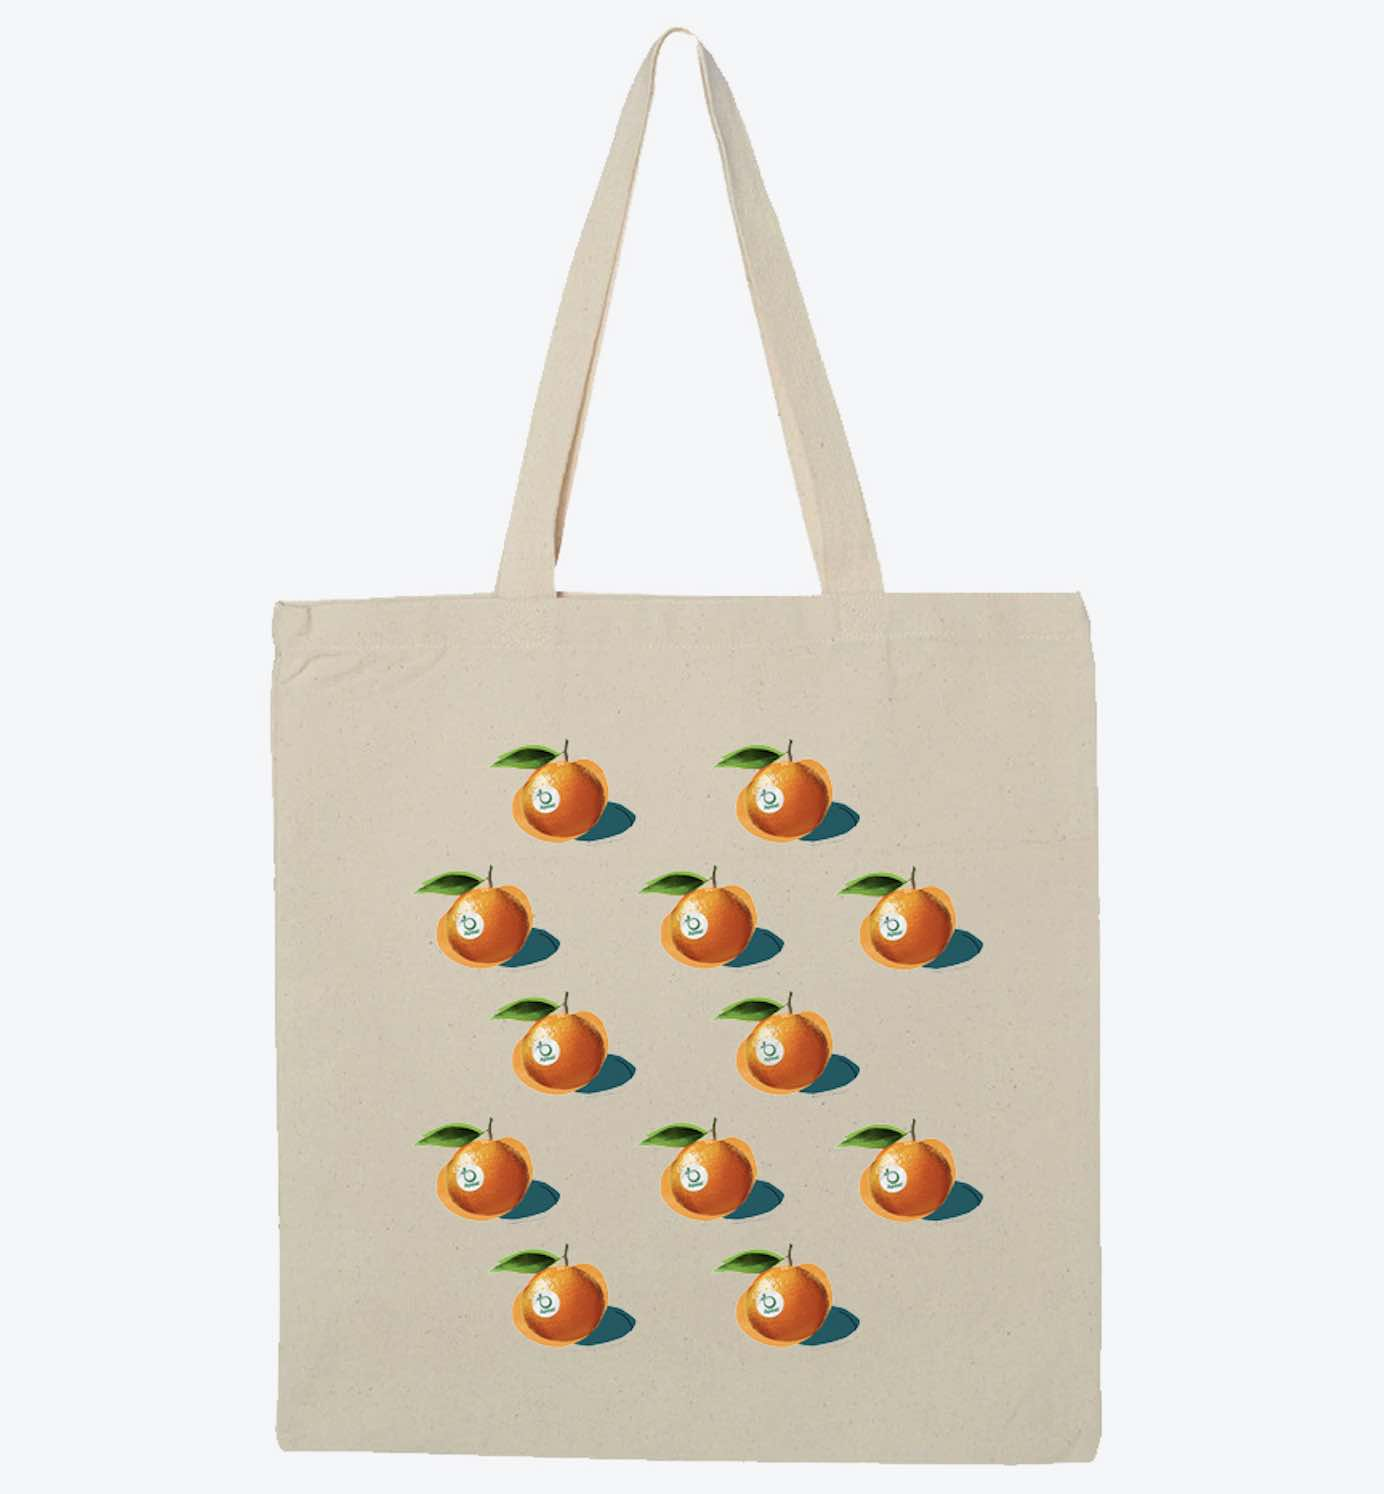 A custom tote with an orange logo multiple times.